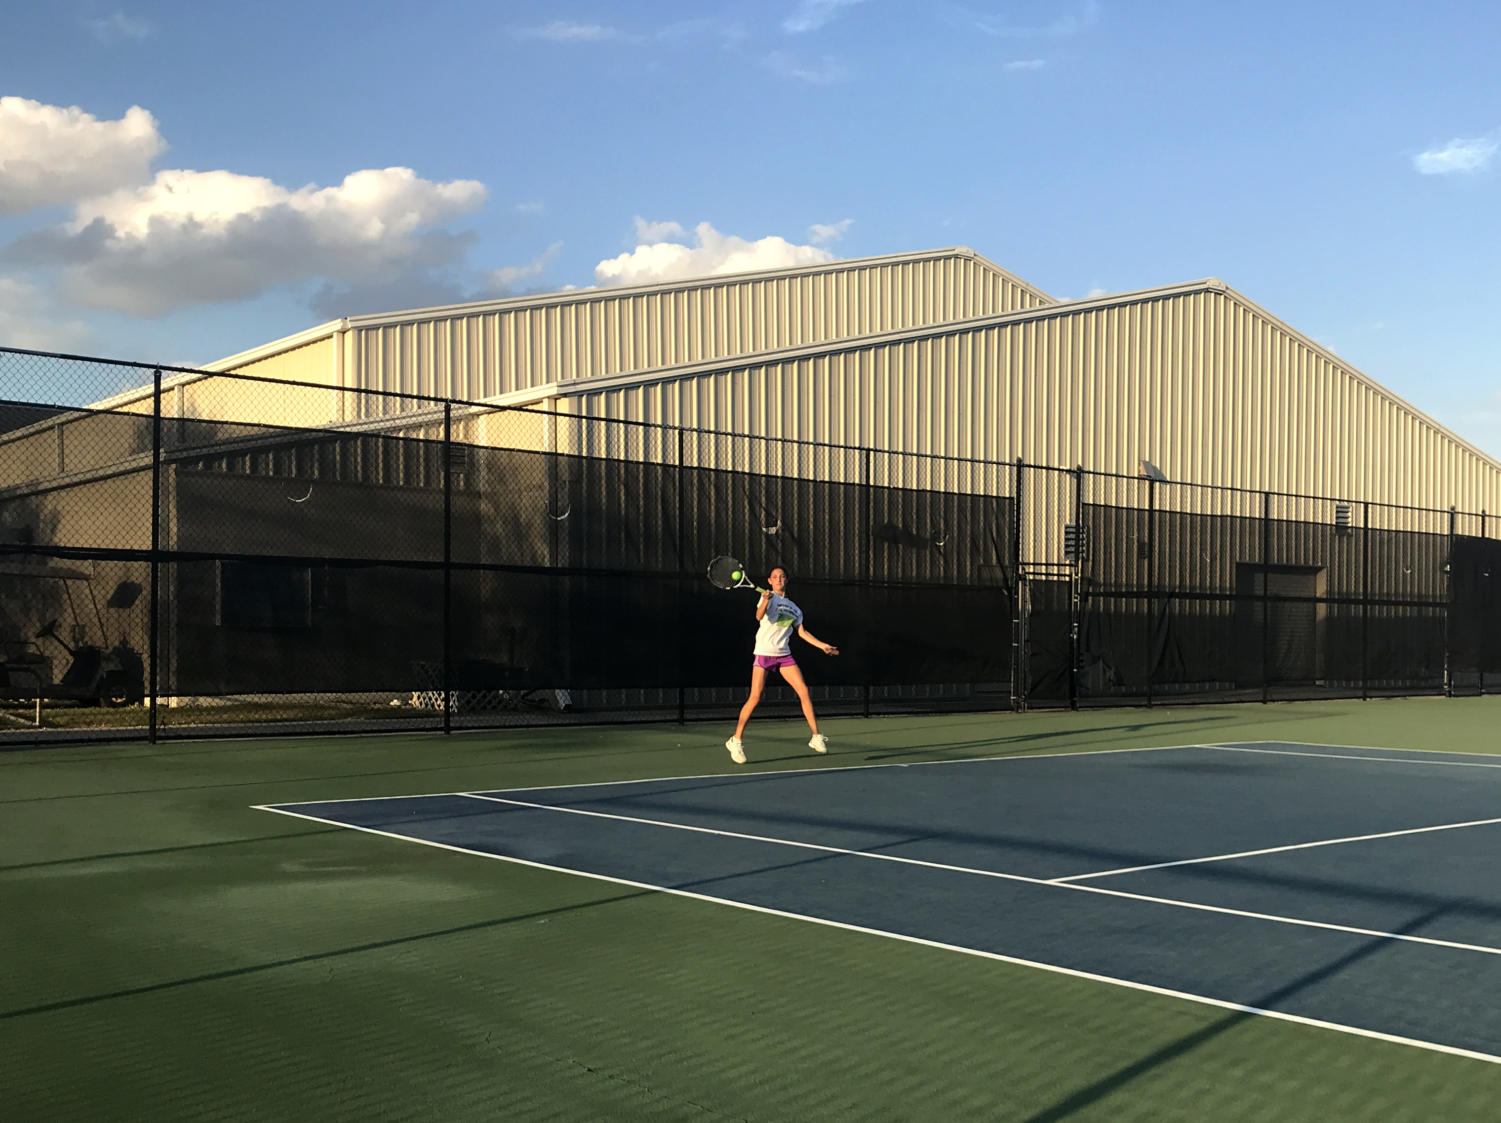 Seventh grader, Carly McNatt, practices skills at tennis practice after school.